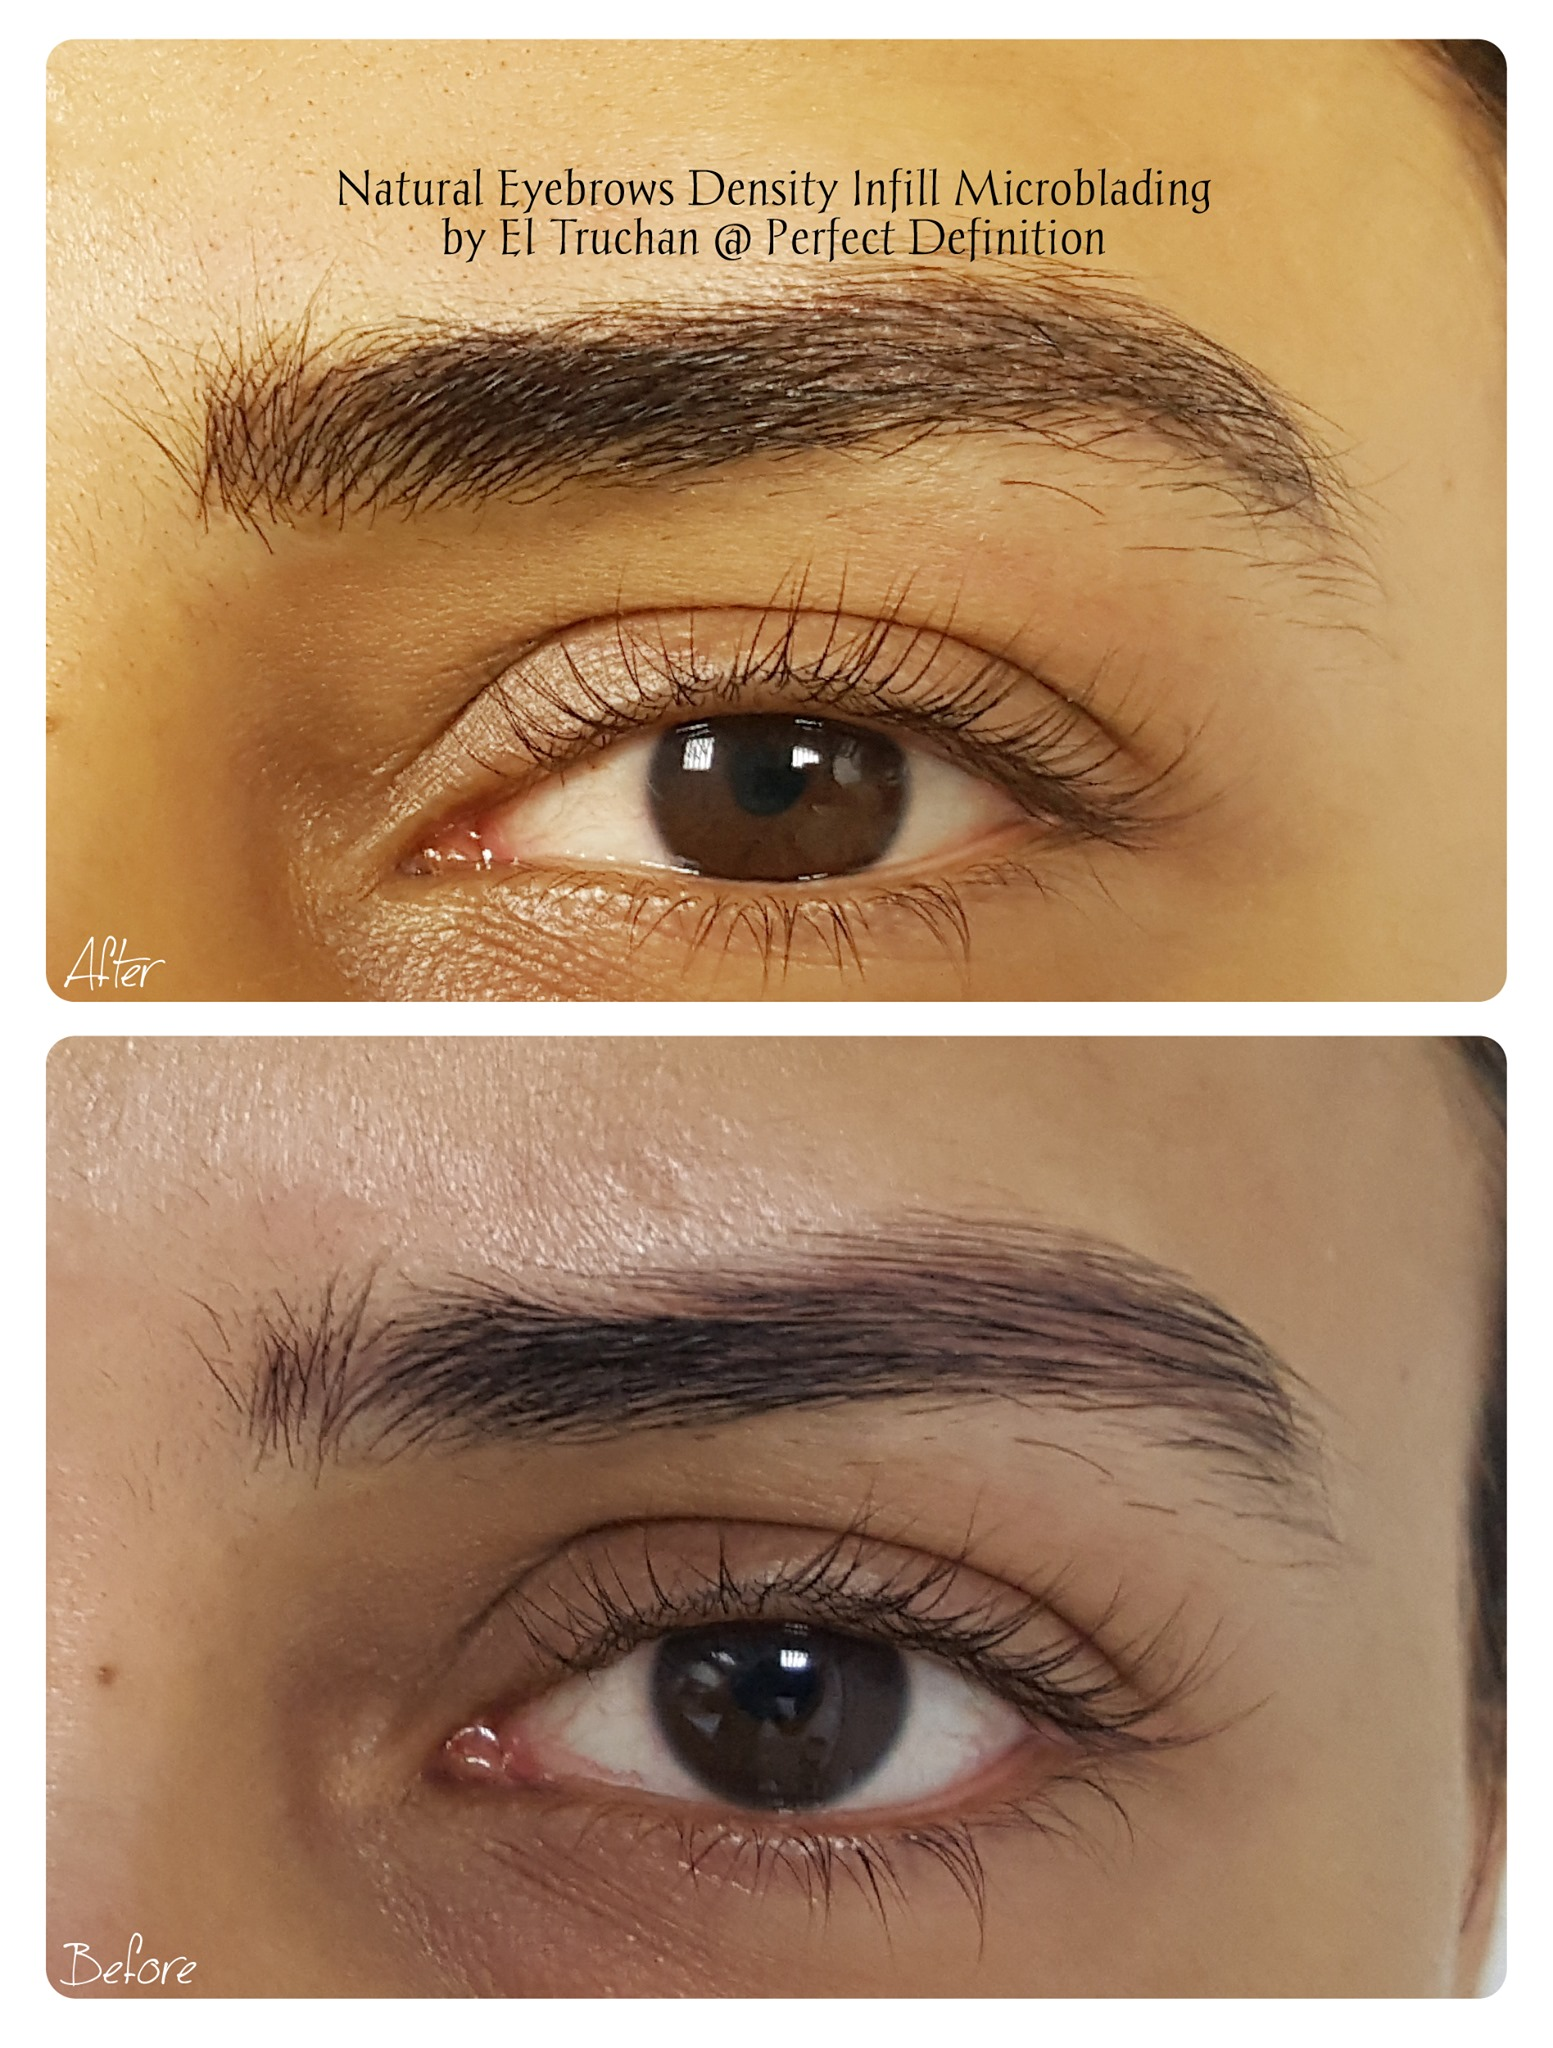 Natural Eyebrows Density Infill Microbla